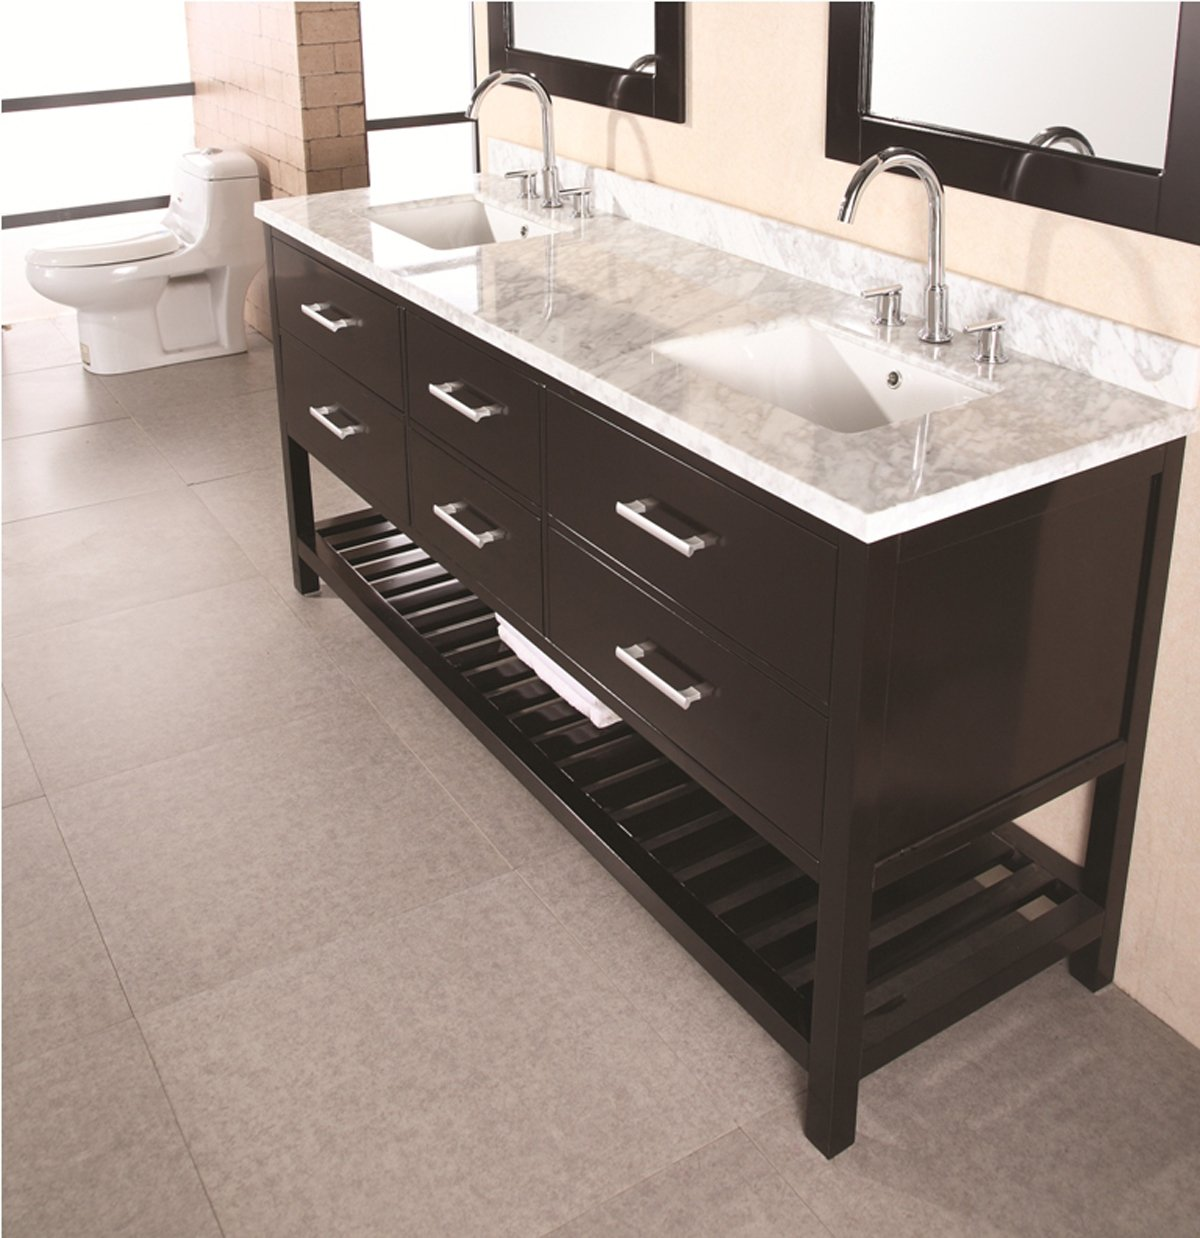 72 inch double sink vanity. design element dec077b london 72-inch double sink vanity set - mirrors amazon.com 72 inch